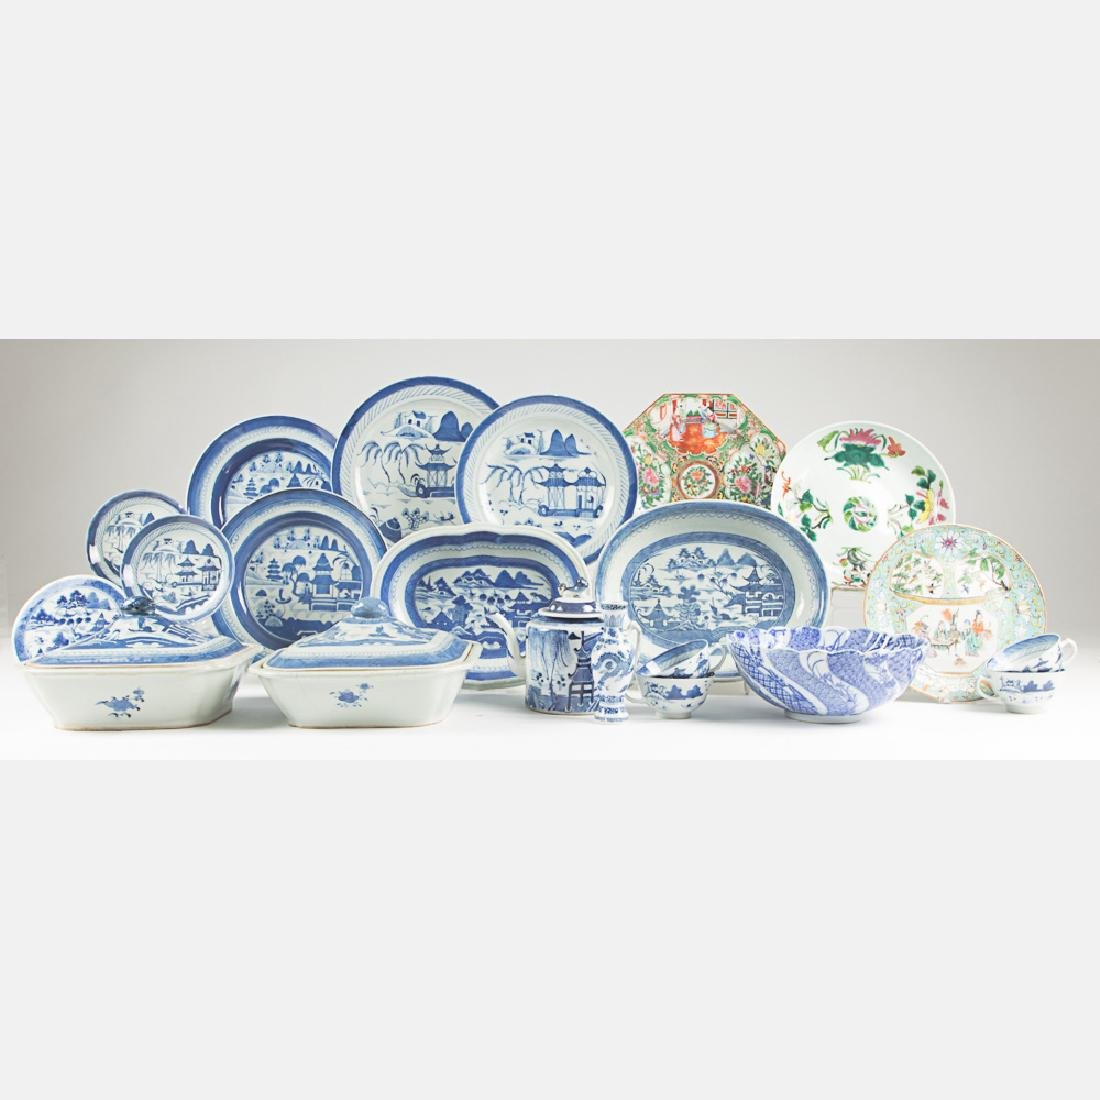 A Miscellaneous Collection of Chinese Blue and White